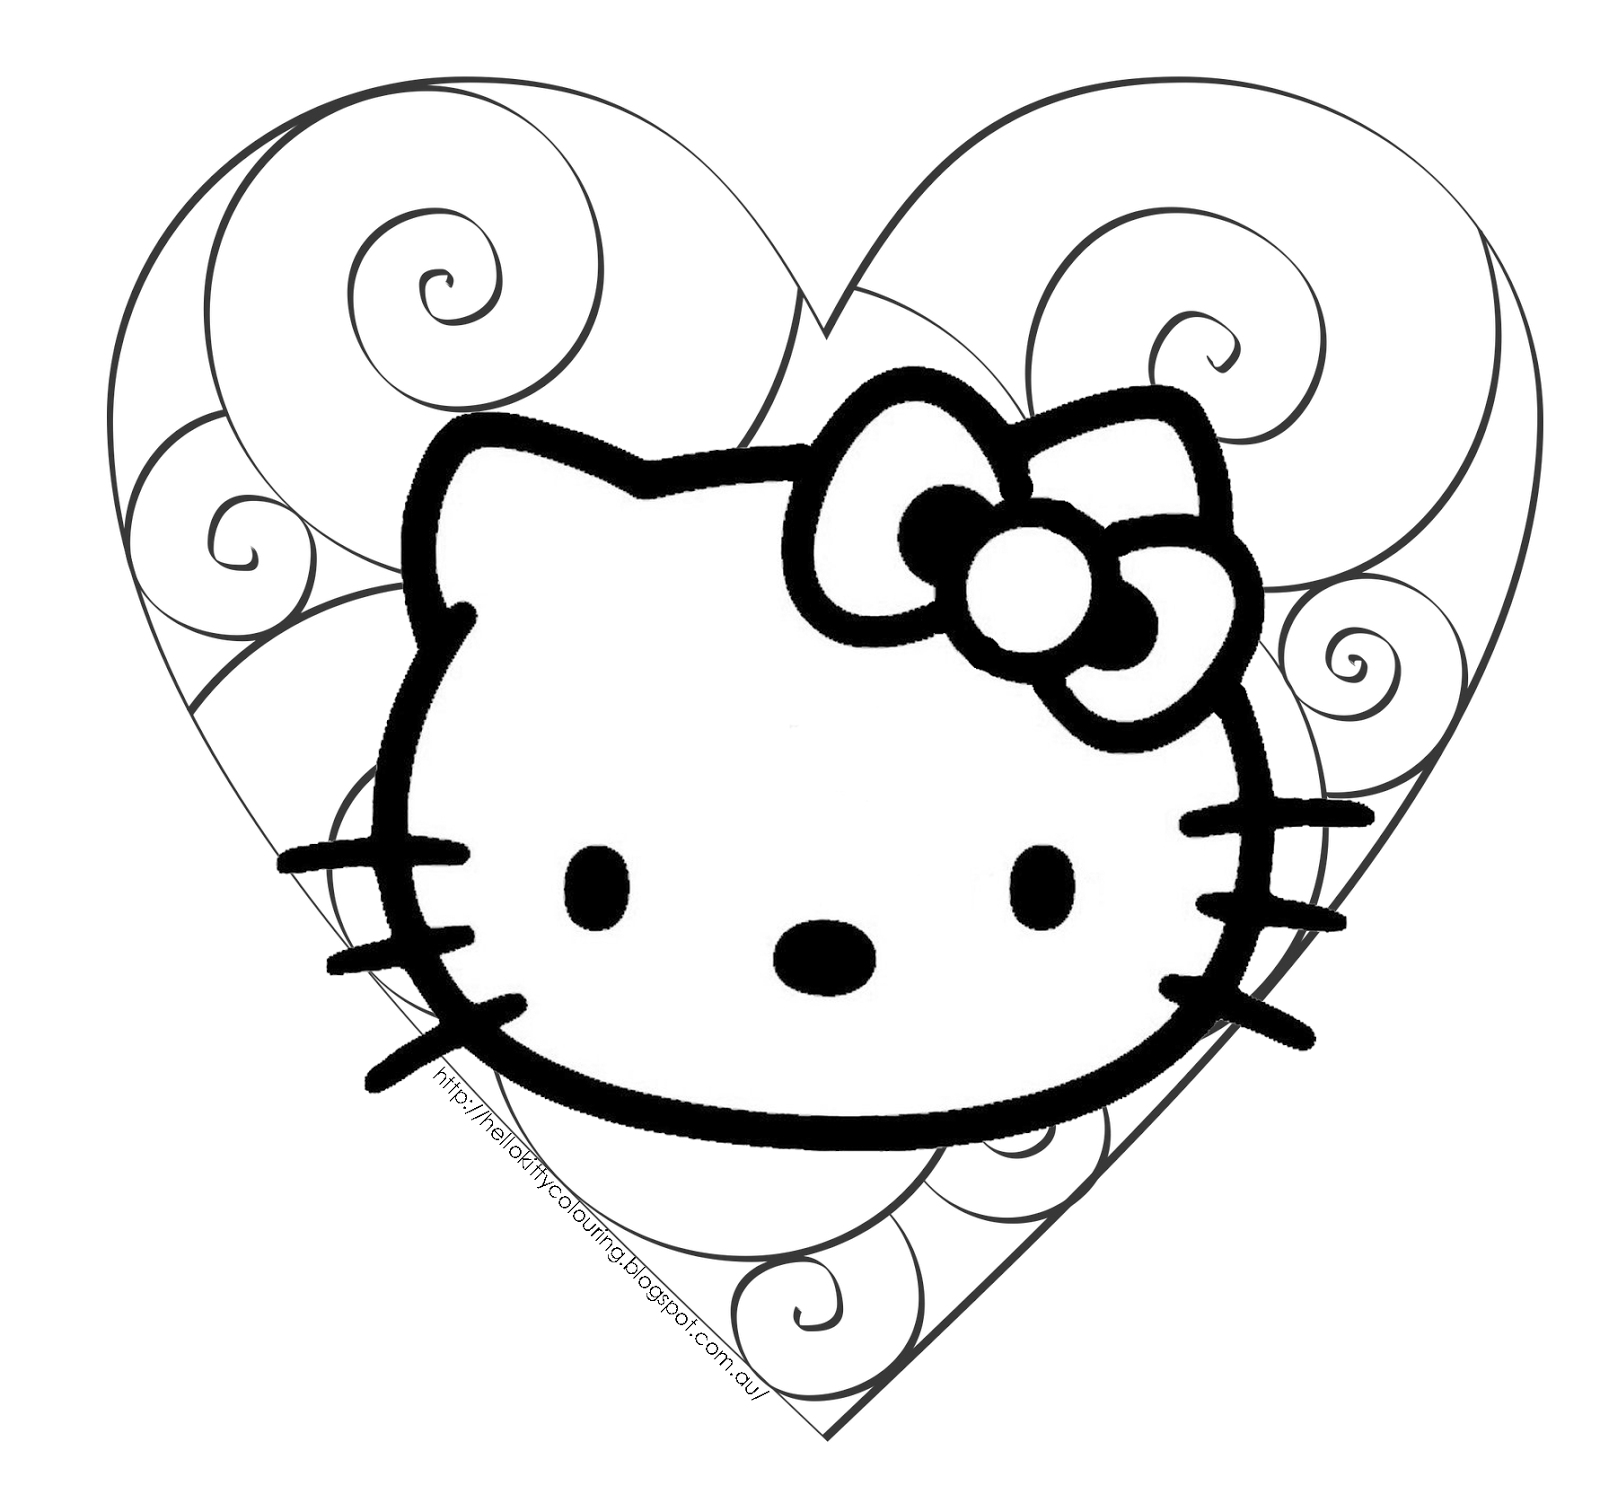 printable coloring pages hello kitty hello kitty coloring pages hello kitty coloring printable pages